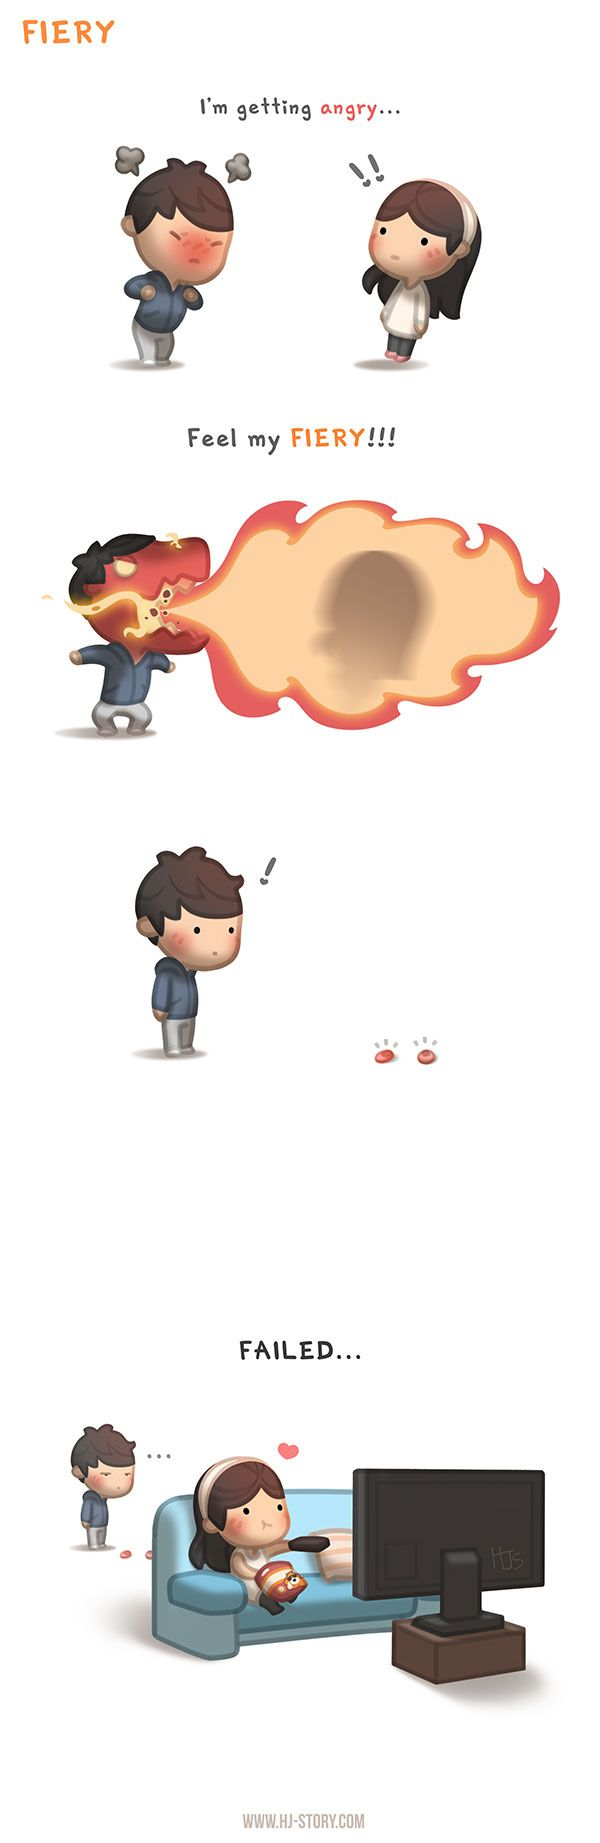 "Check out the comic ""HJ-Story :: Fiery"" http://tapastic.com/episode/71354"